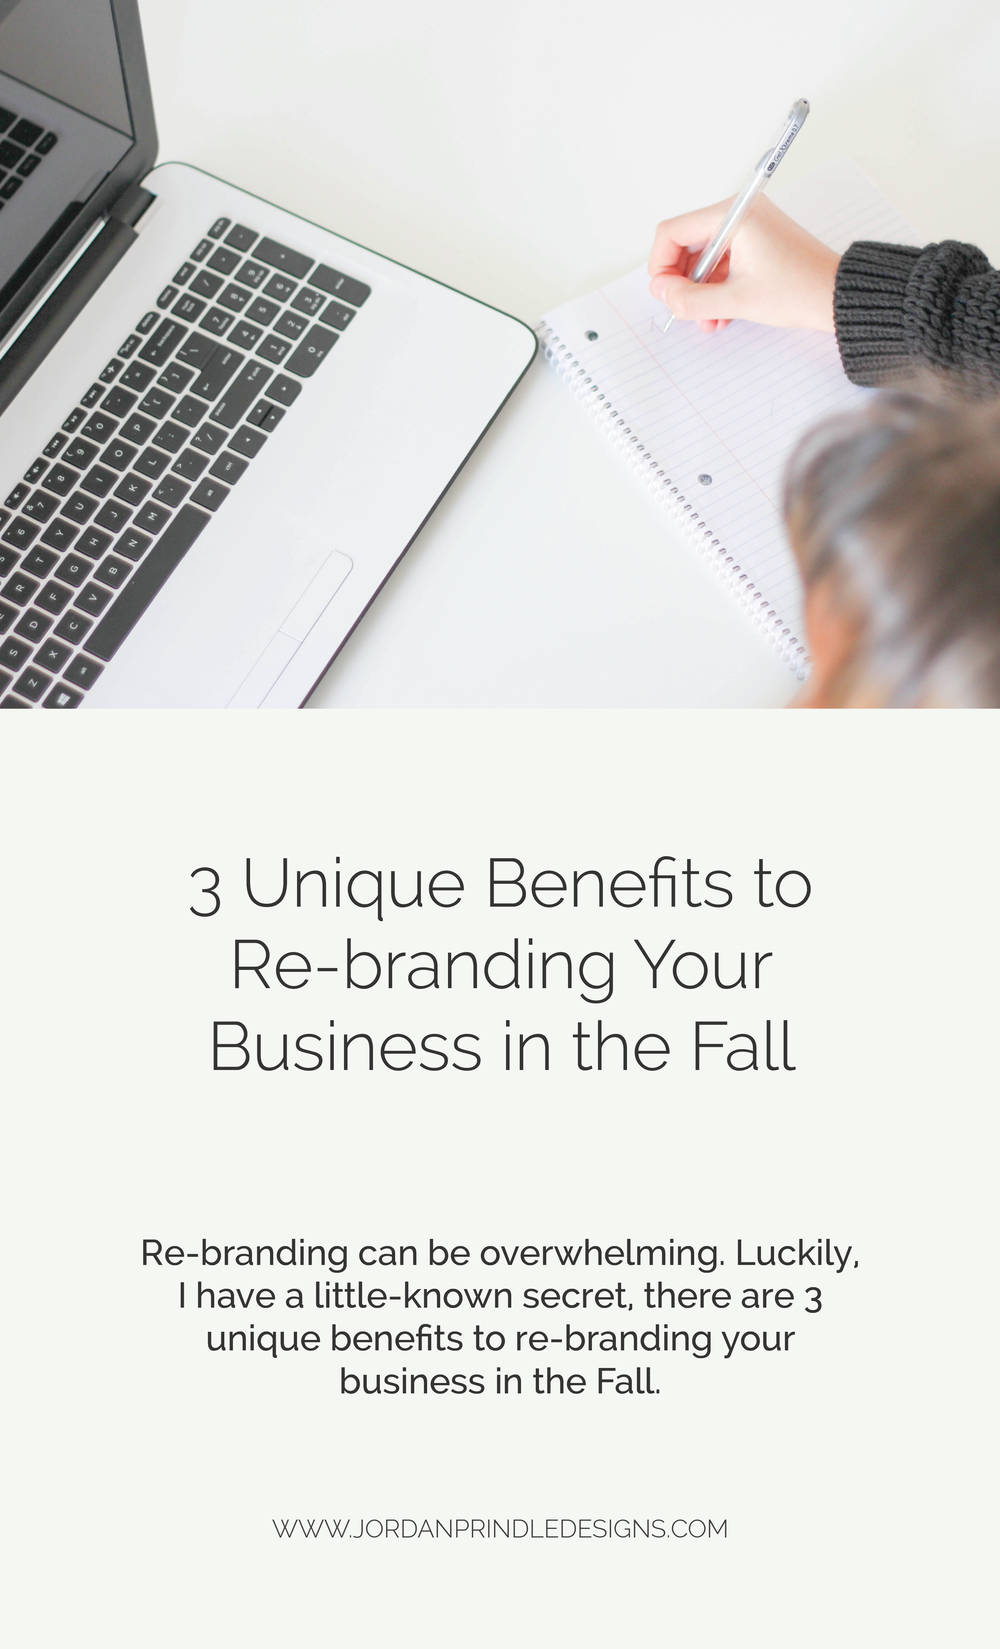 3 Unique Benefits to Re-branding Your Business in the Fall | Re-branding your creative business can be overwhelming, but it doesn't have to be. Keep reading at www.jordanprindledesigns.com #custombranding #branddesigner #brandingtips